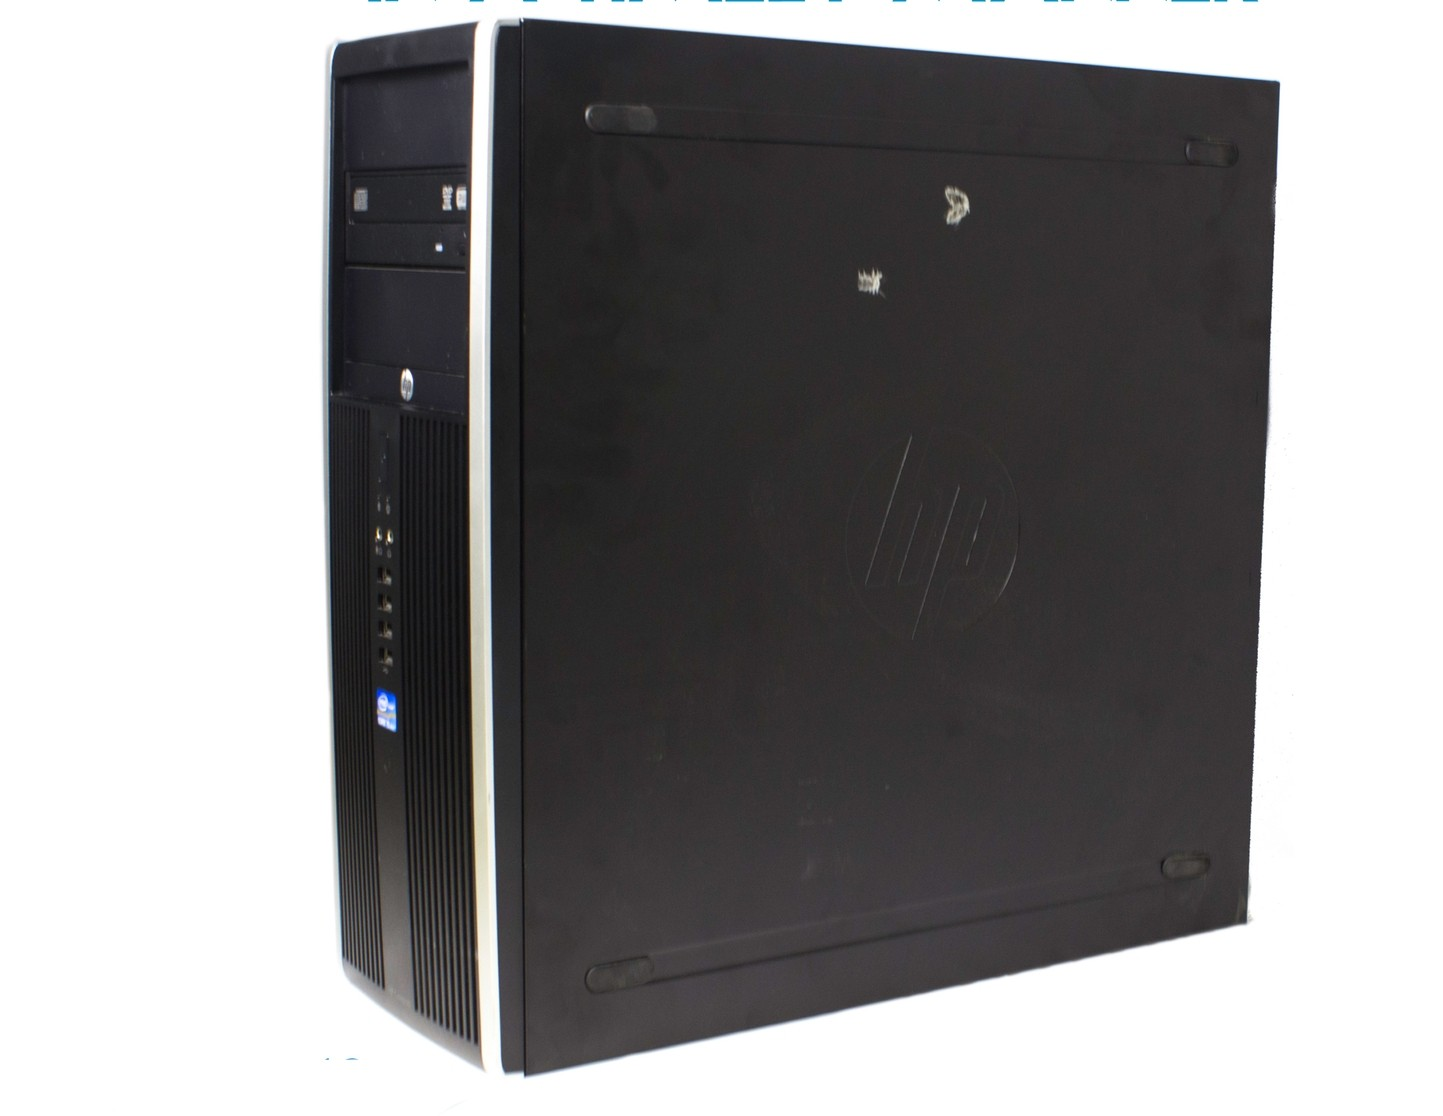 HP-ELI-8300-i5-HP Compaq Elite 8300 CMT Intel i5 8 GB RAM 500 GB HDD Windows 10 Pro-image